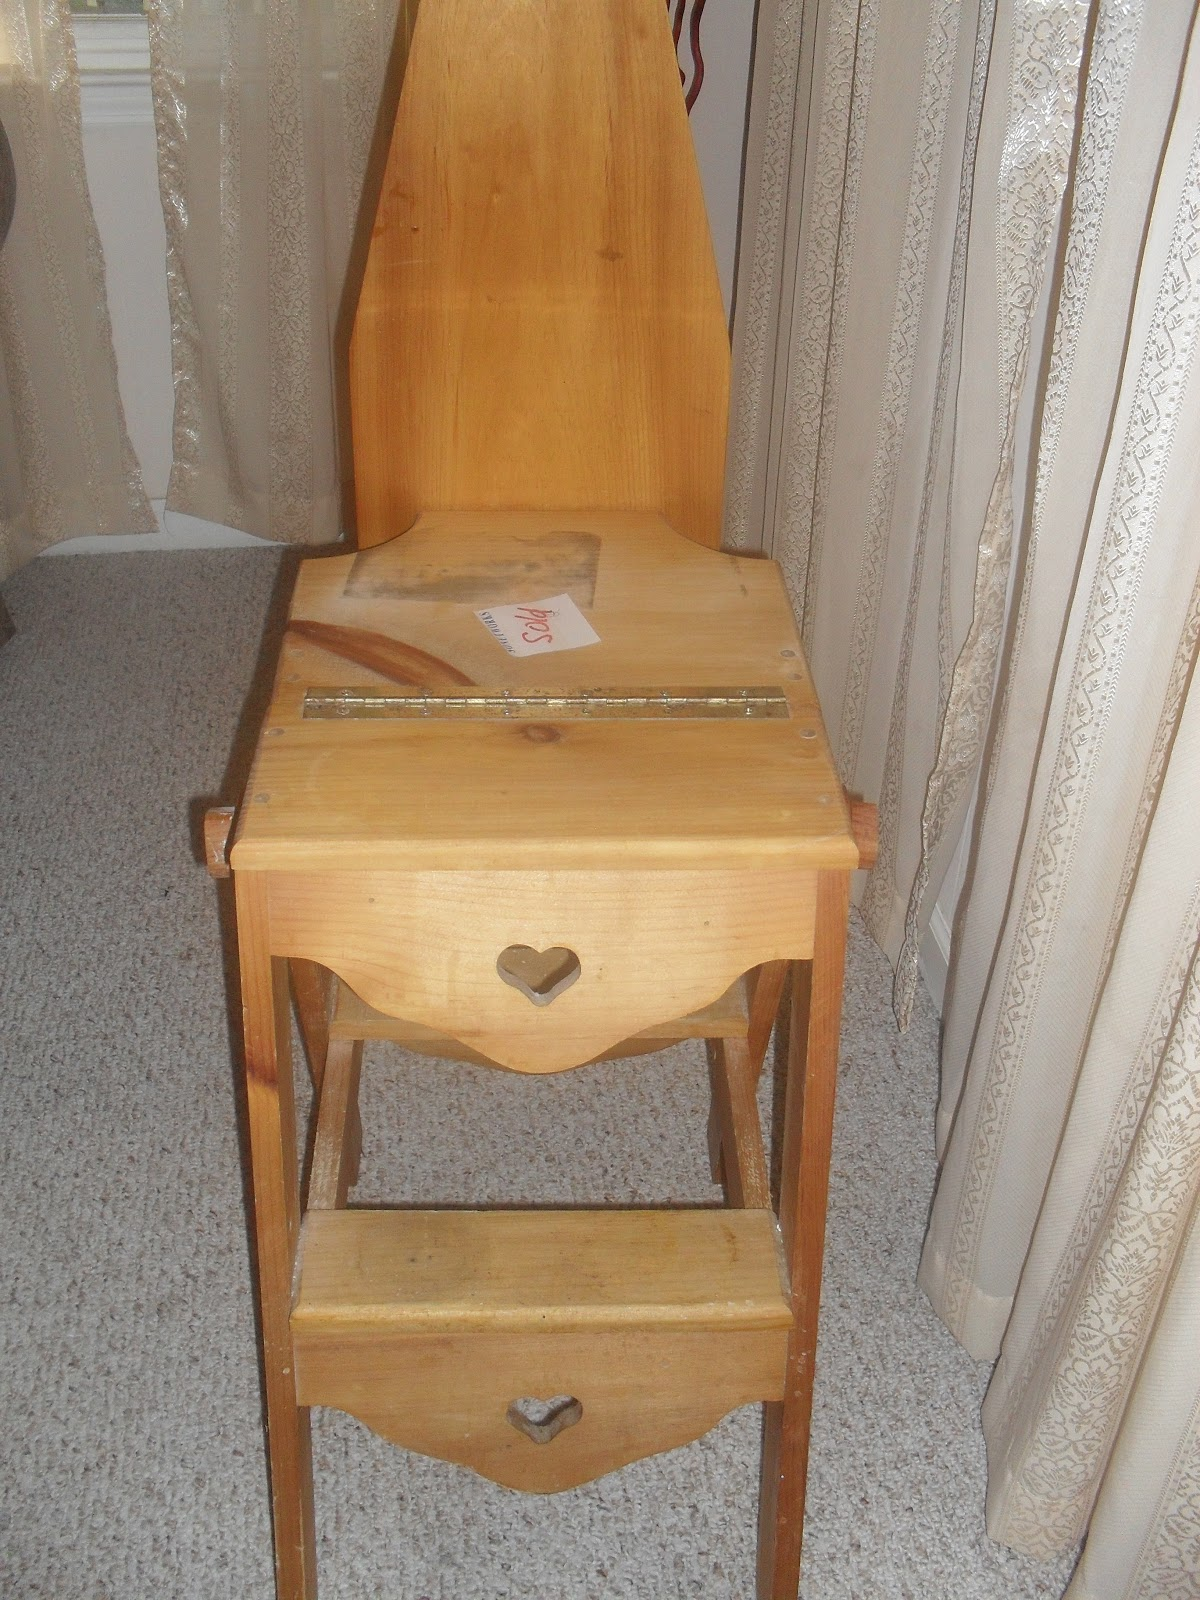 chair step stool ironing board ergo desk lizzi 39s blog onit bachelor dream come true